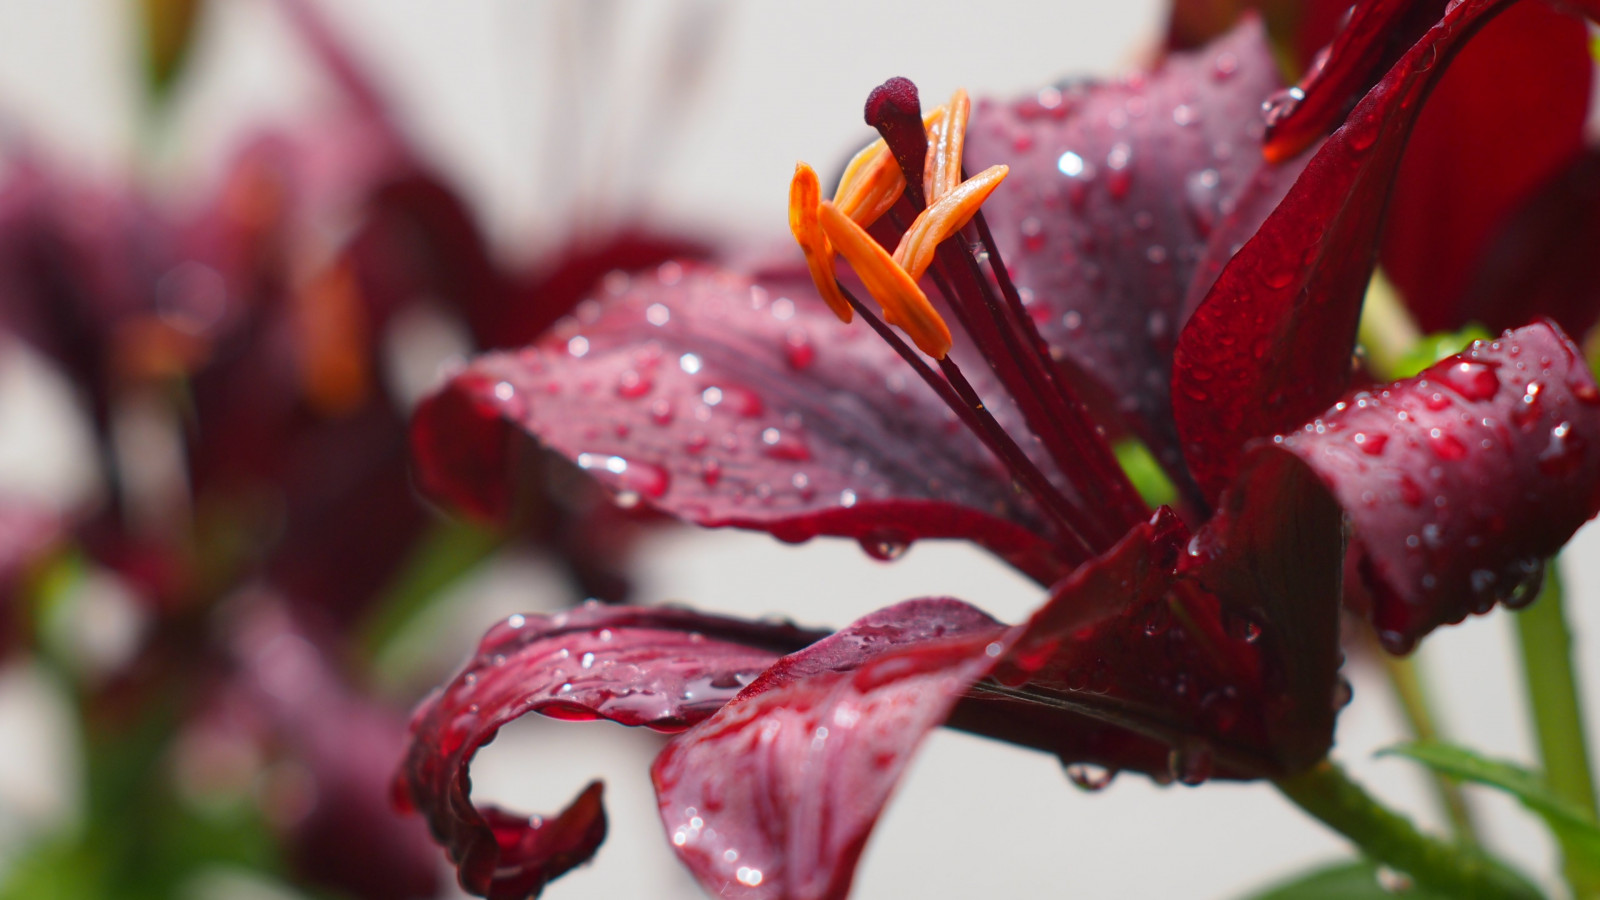 Lily flower and water drops | 1600x900 wallpaper